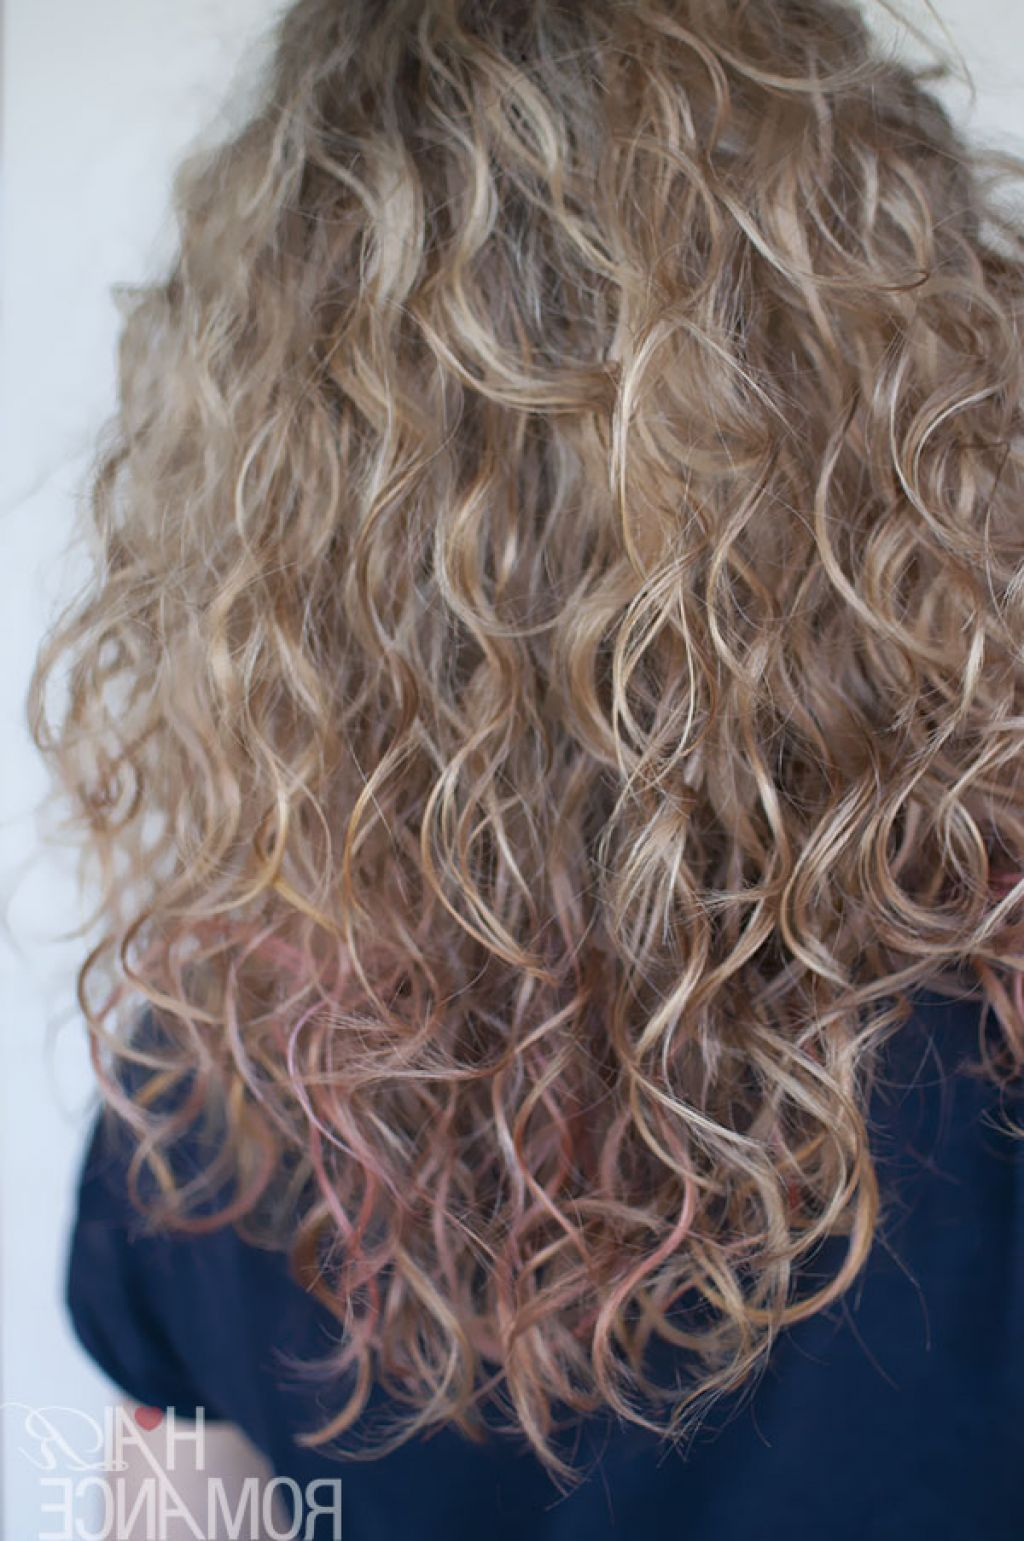 Long Layered Hairstyles For Curly Hair Google Search Curly Hair Styles Naturally Curly Hair Photos Permed Hairstyles